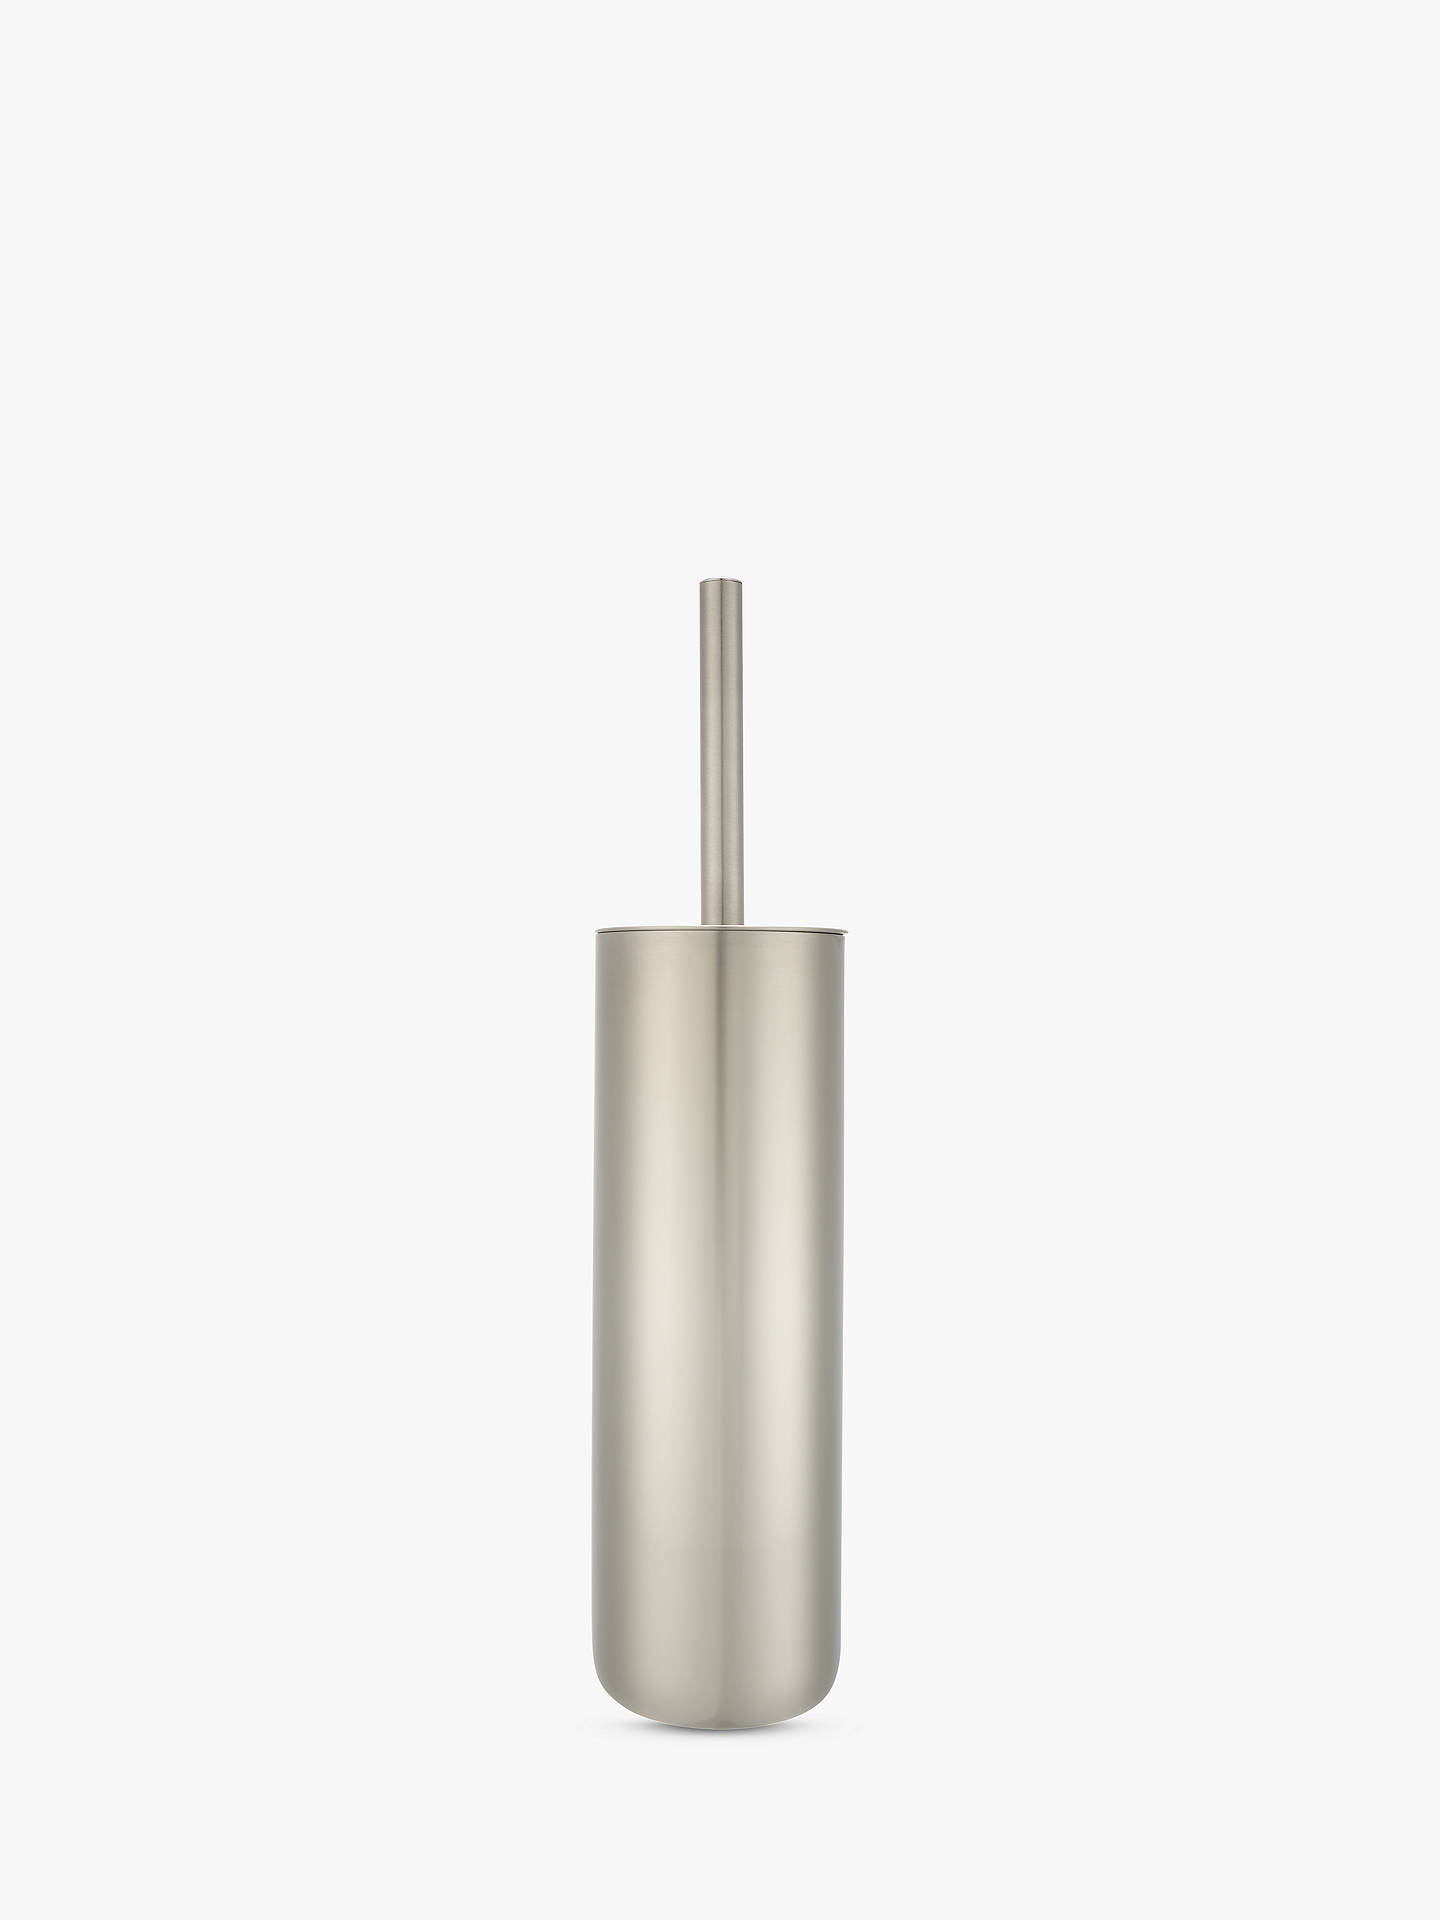 BuyJohn Lewis & Partners Toilet Brush and Holder, Two Tone Stainless Steel Online at johnlewis.com